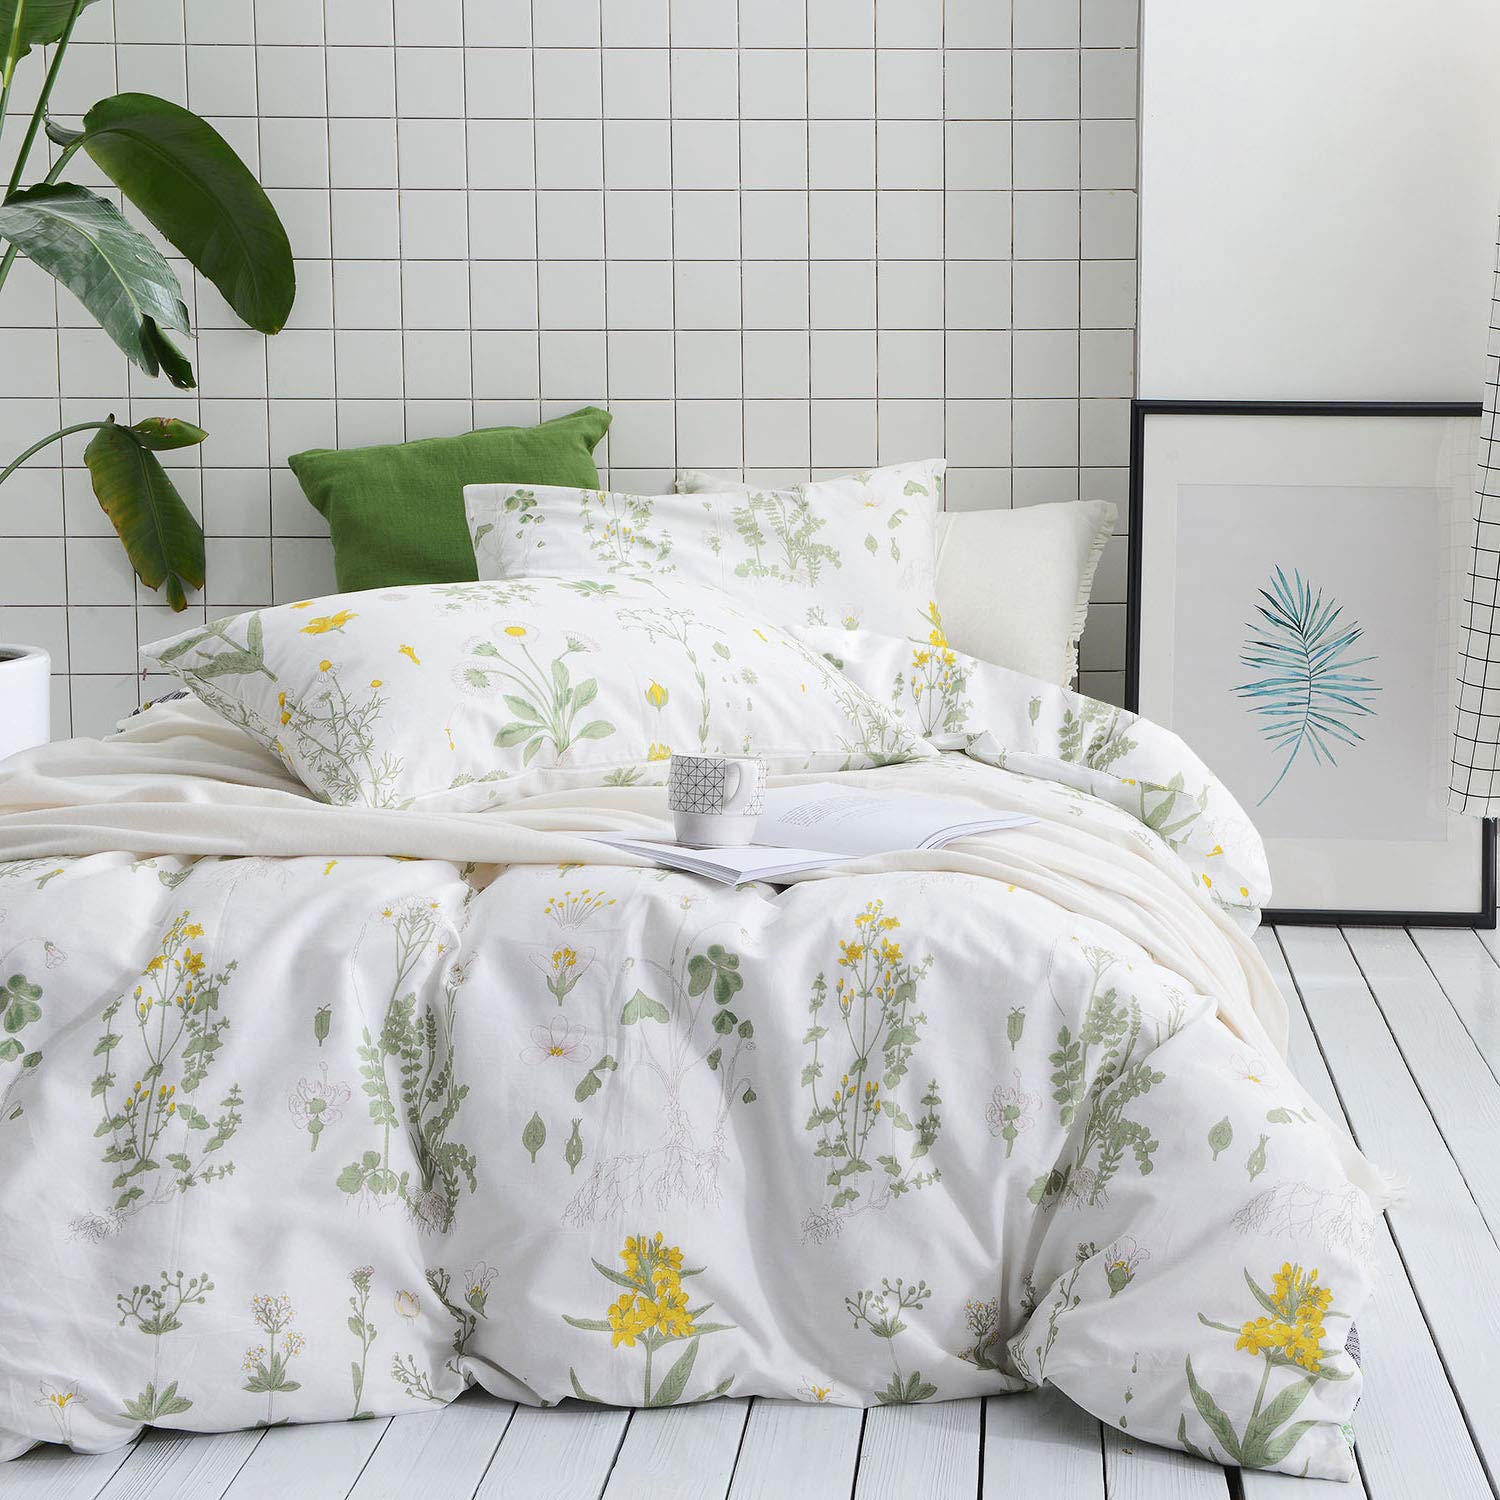 Wake In Cloud - Botanical Duvet Cover Set, 100% Cotton Bedding, Yellow Flowers and Green Leaves Floral Garden Pattern Printed on White (3pcs, Full Size)